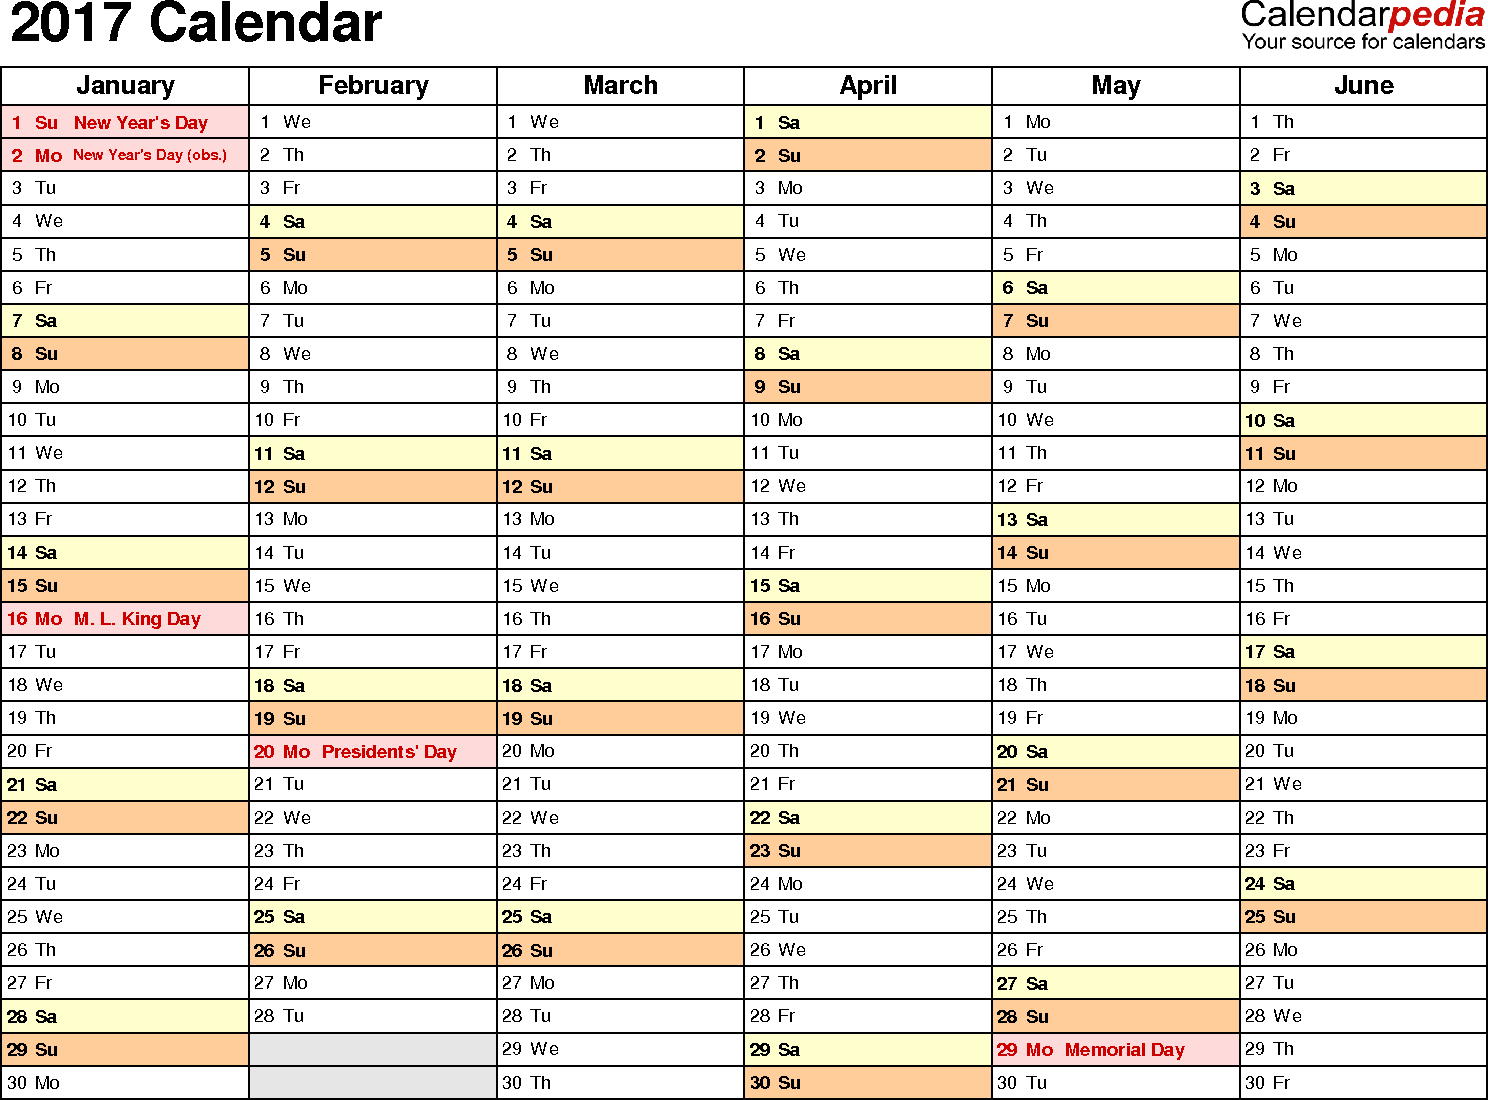 Ediblewildsus  Inspiring  Calendar  Download  Free Printable Excel Templates Xls With Fascinating Template   Calendar For Excel Months Horizontally  Pages Landscape Orientation With Attractive Open Excel Workbook Vba Also Pathfinder Character Generator Excel In Addition Excel Saga Episode  And Financial Analysis And Modeling Using Excel And Vba As Well As Excel Data From Web Additionally Excel Graph Multiple Series From Calendarpediacom With Ediblewildsus  Fascinating  Calendar  Download  Free Printable Excel Templates Xls With Attractive Template   Calendar For Excel Months Horizontally  Pages Landscape Orientation And Inspiring Open Excel Workbook Vba Also Pathfinder Character Generator Excel In Addition Excel Saga Episode  From Calendarpediacom